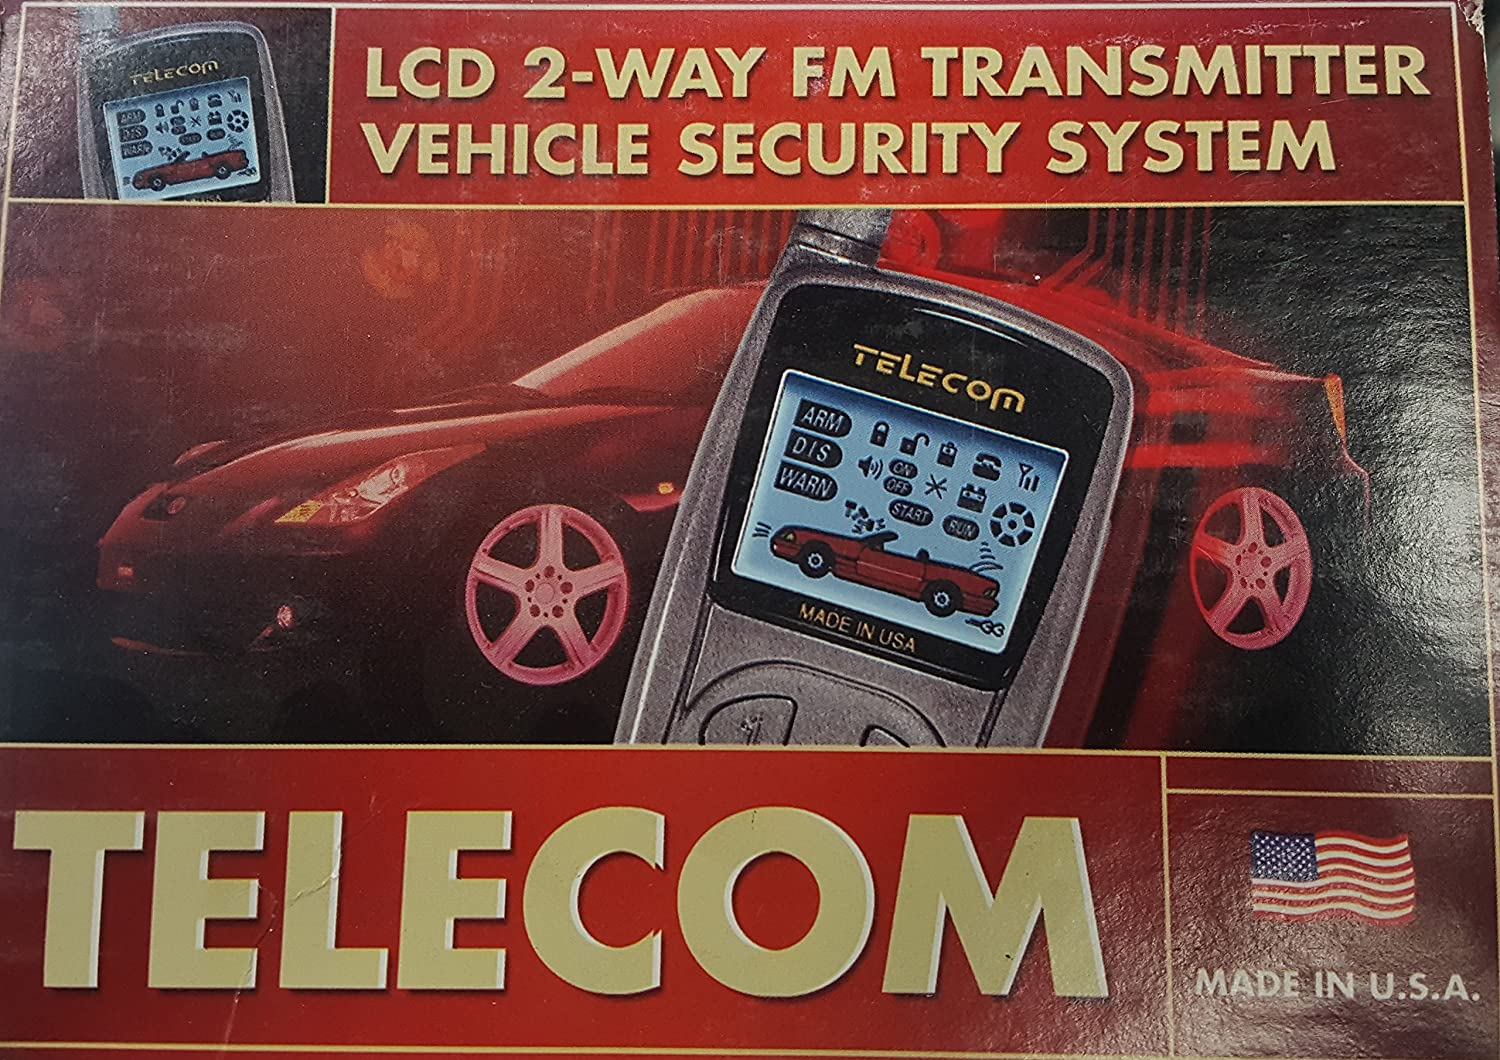 Telecom Vcs7000 2 Way Lcd Alarm And Remote Start System Tvr Starter Car Electronics